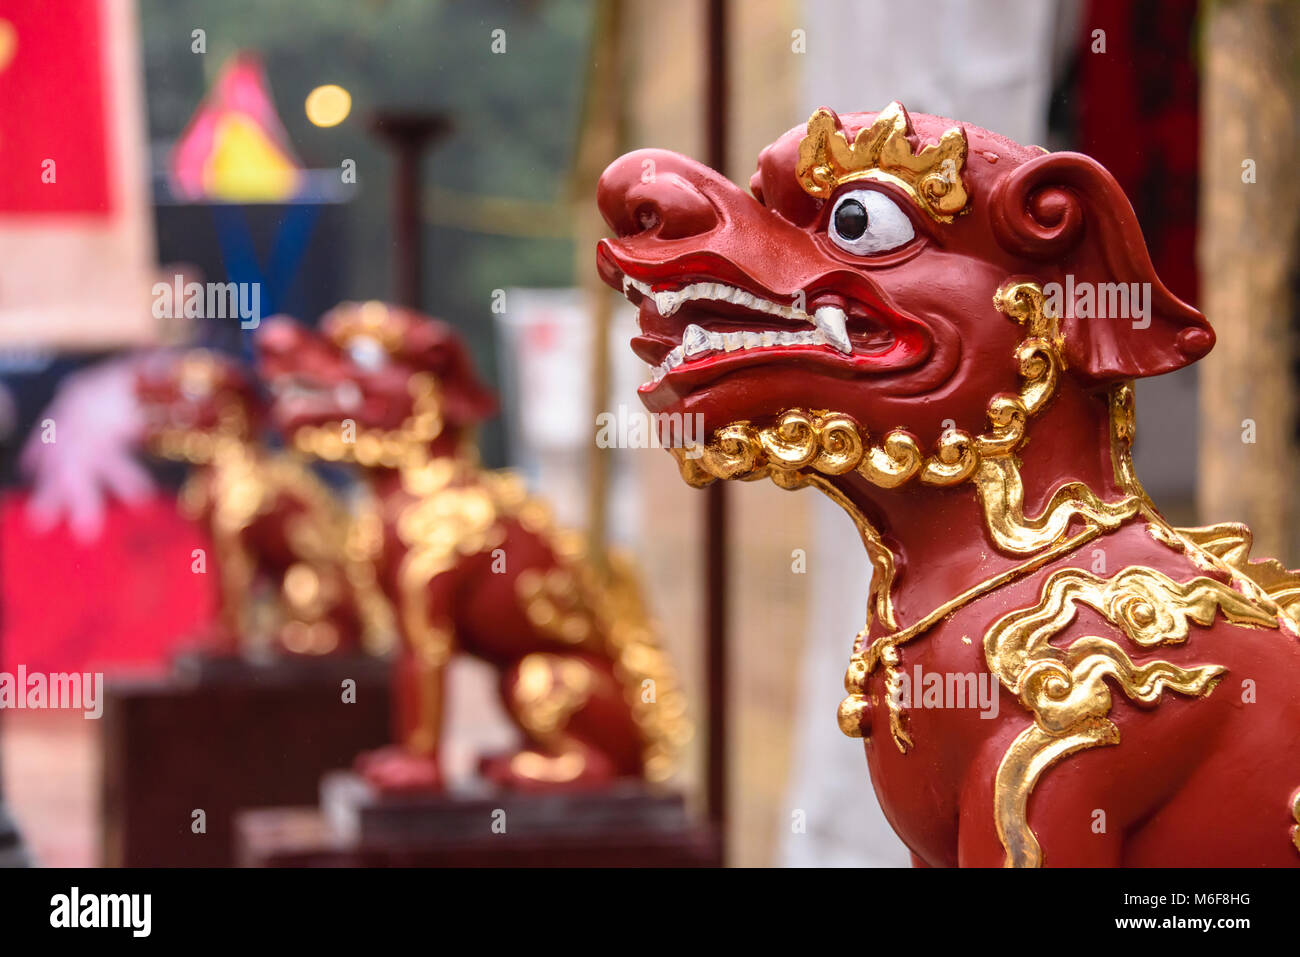 Stylised statues of dogs commemorate the start of the Year of the Dog Chinese New Year in Hanoi, Vietnam - Stock Image